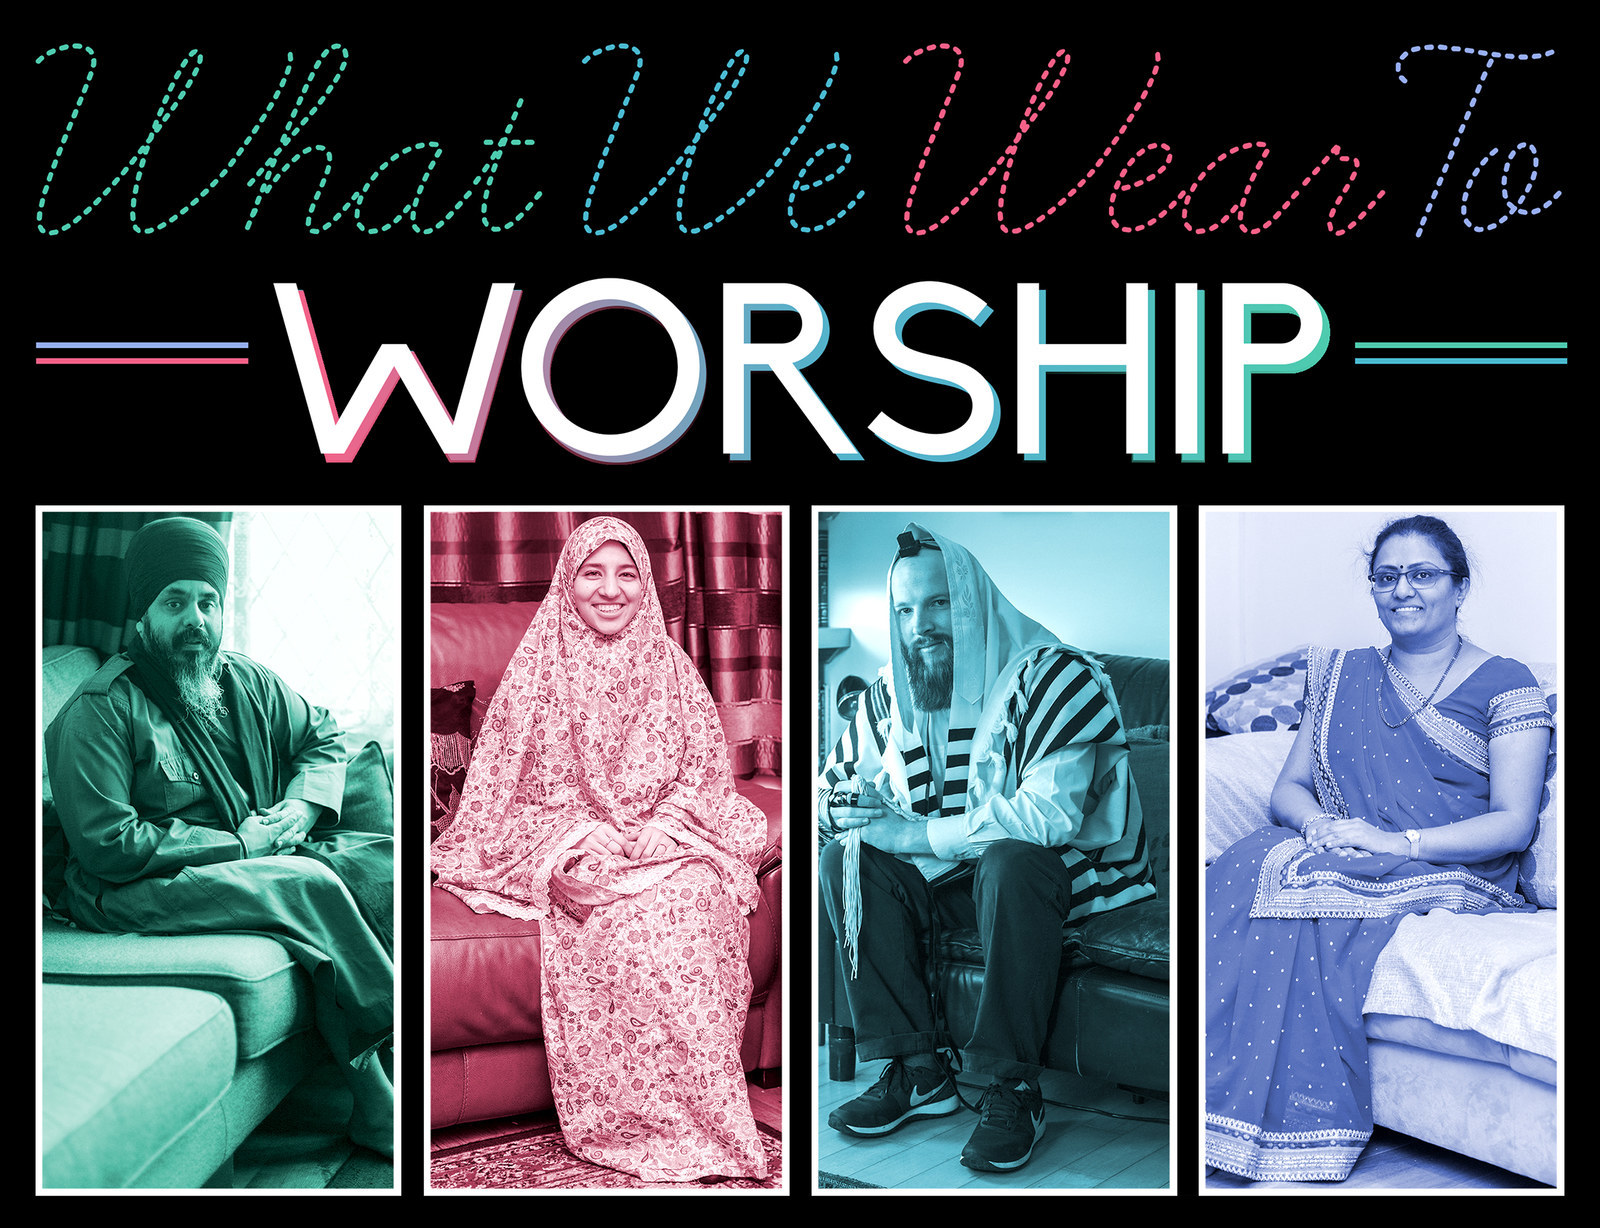 What do Christians wear during worship?